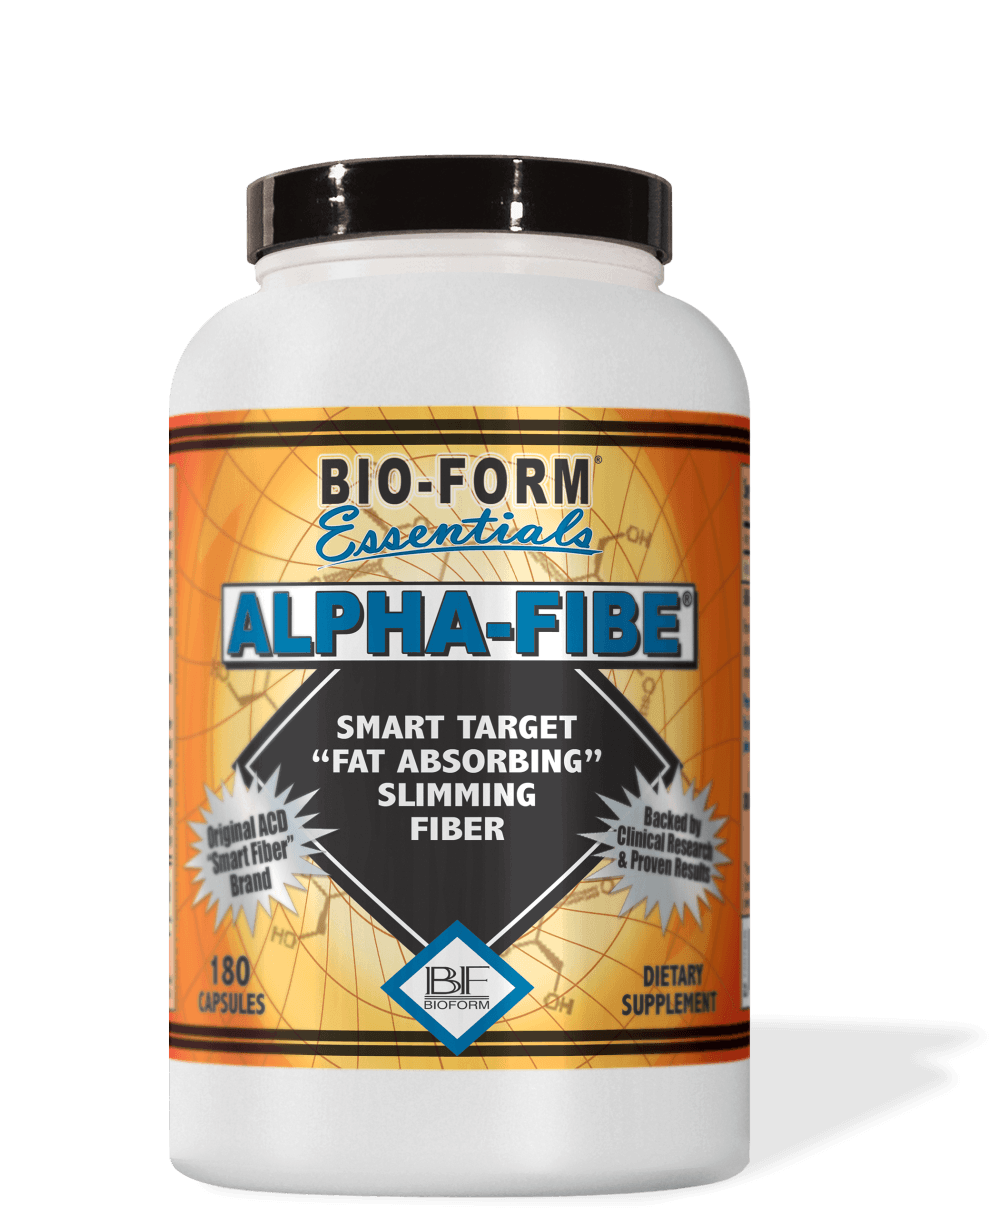 Alpha-Fibe product image, alpha fibe bottle